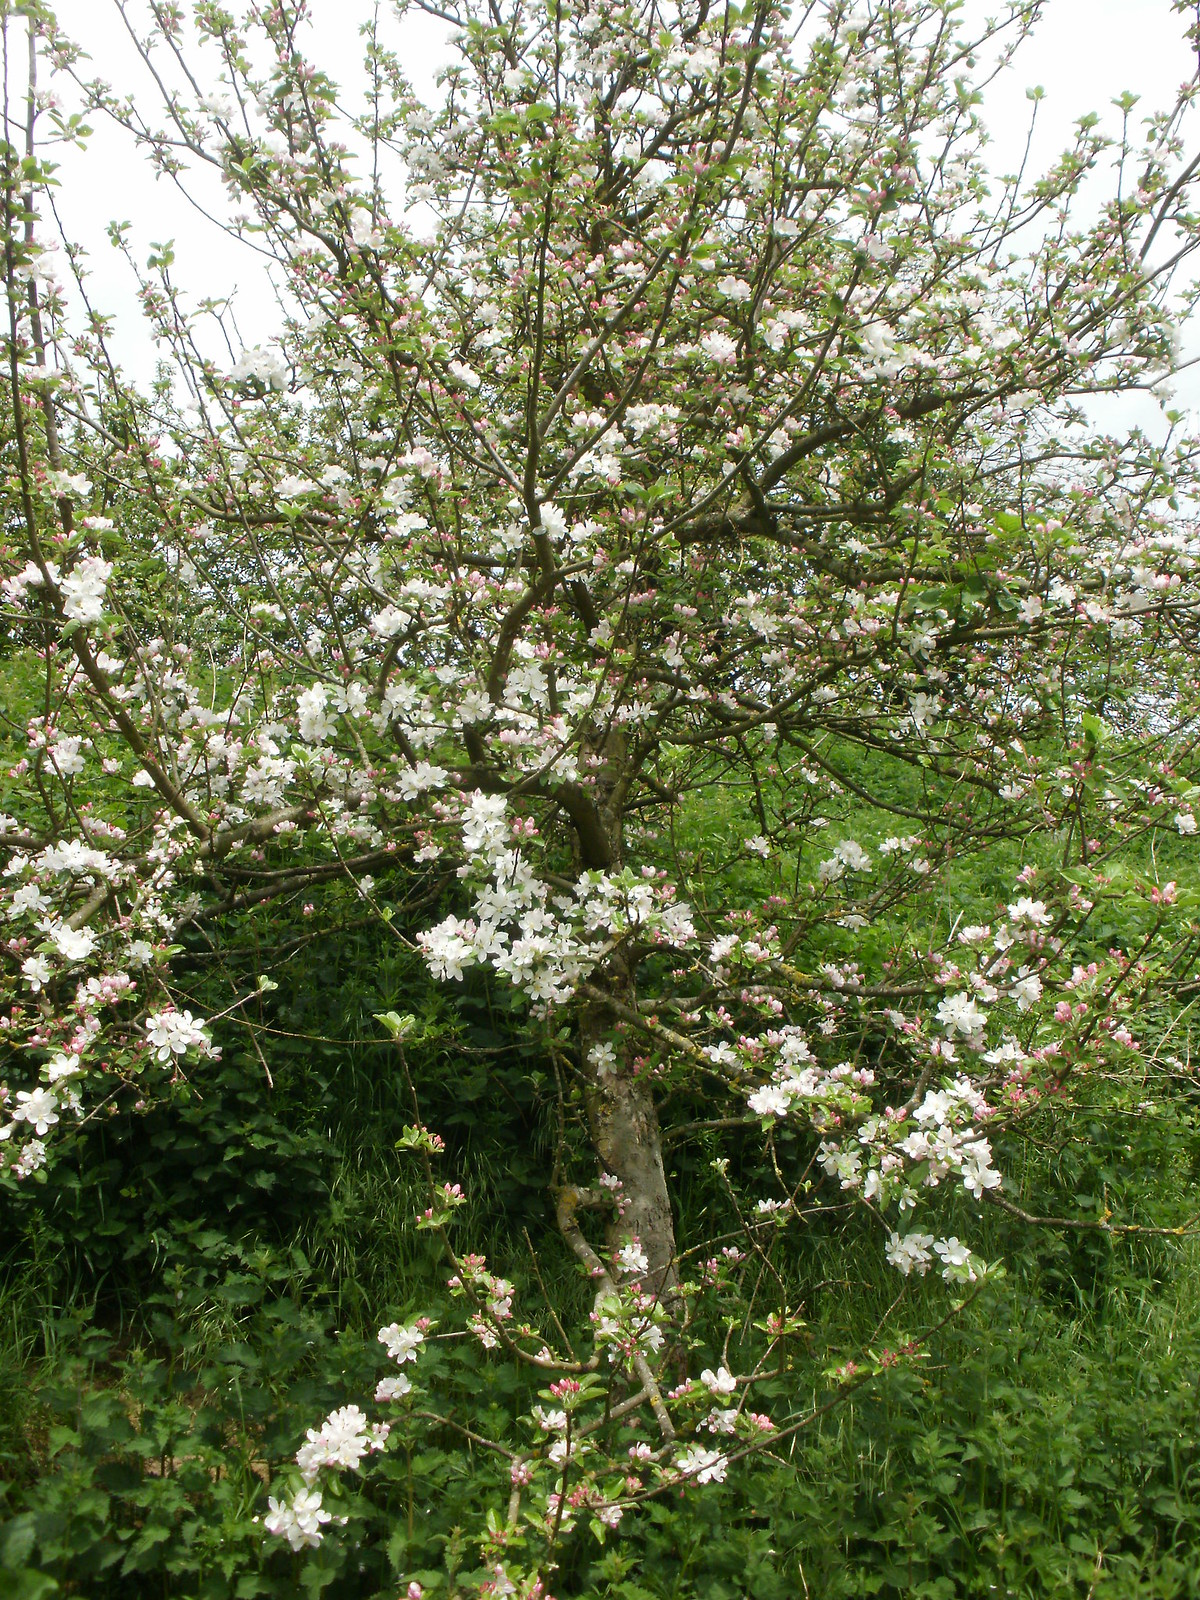 Blossom on fruit tree